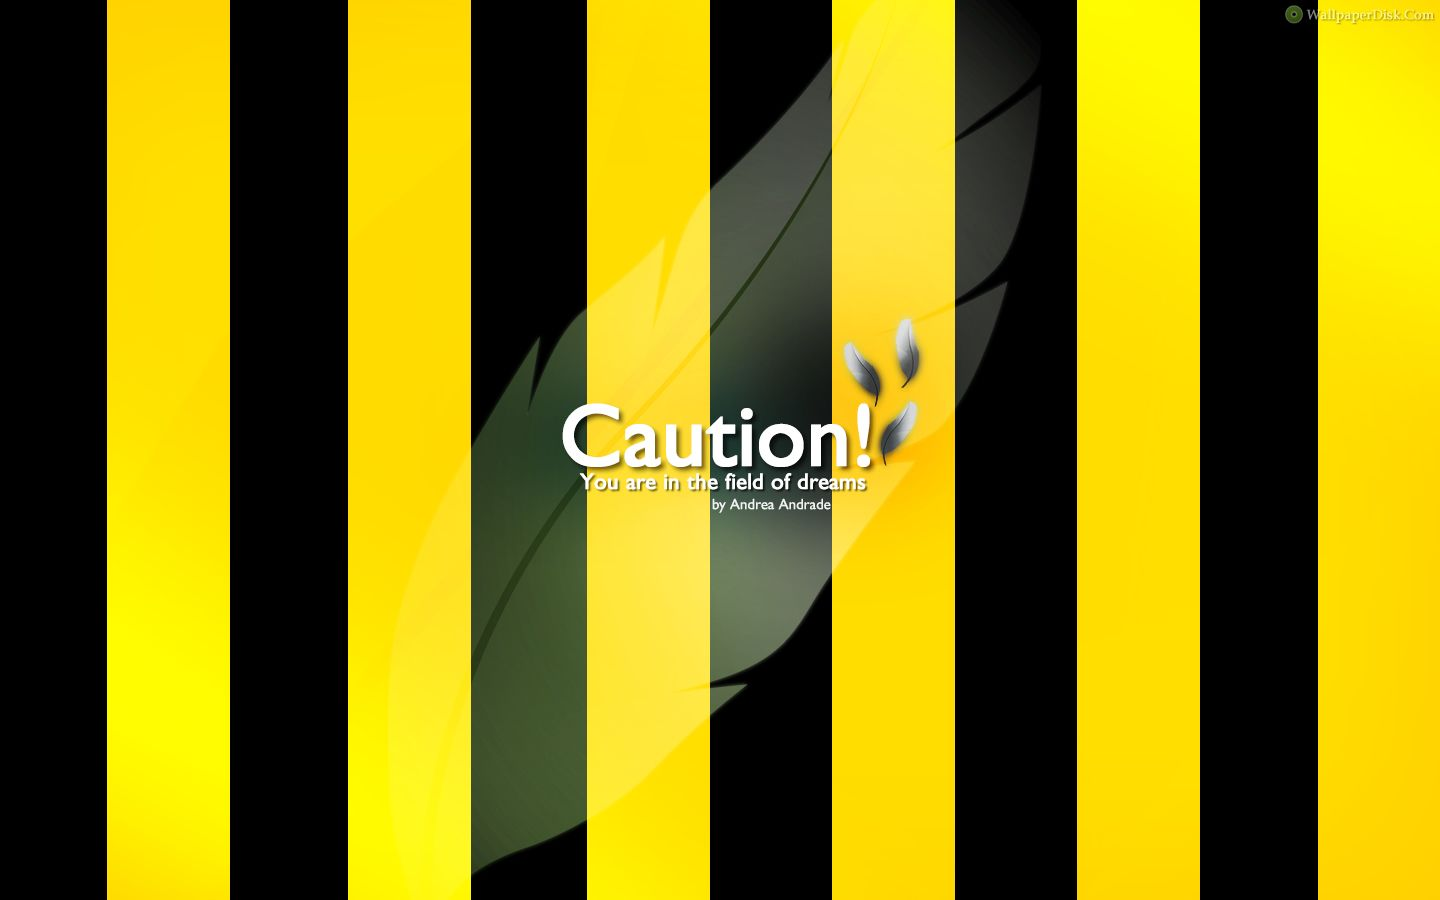 Black And Yellow Wallpaper 6 Background Hdblackwallpaper Com